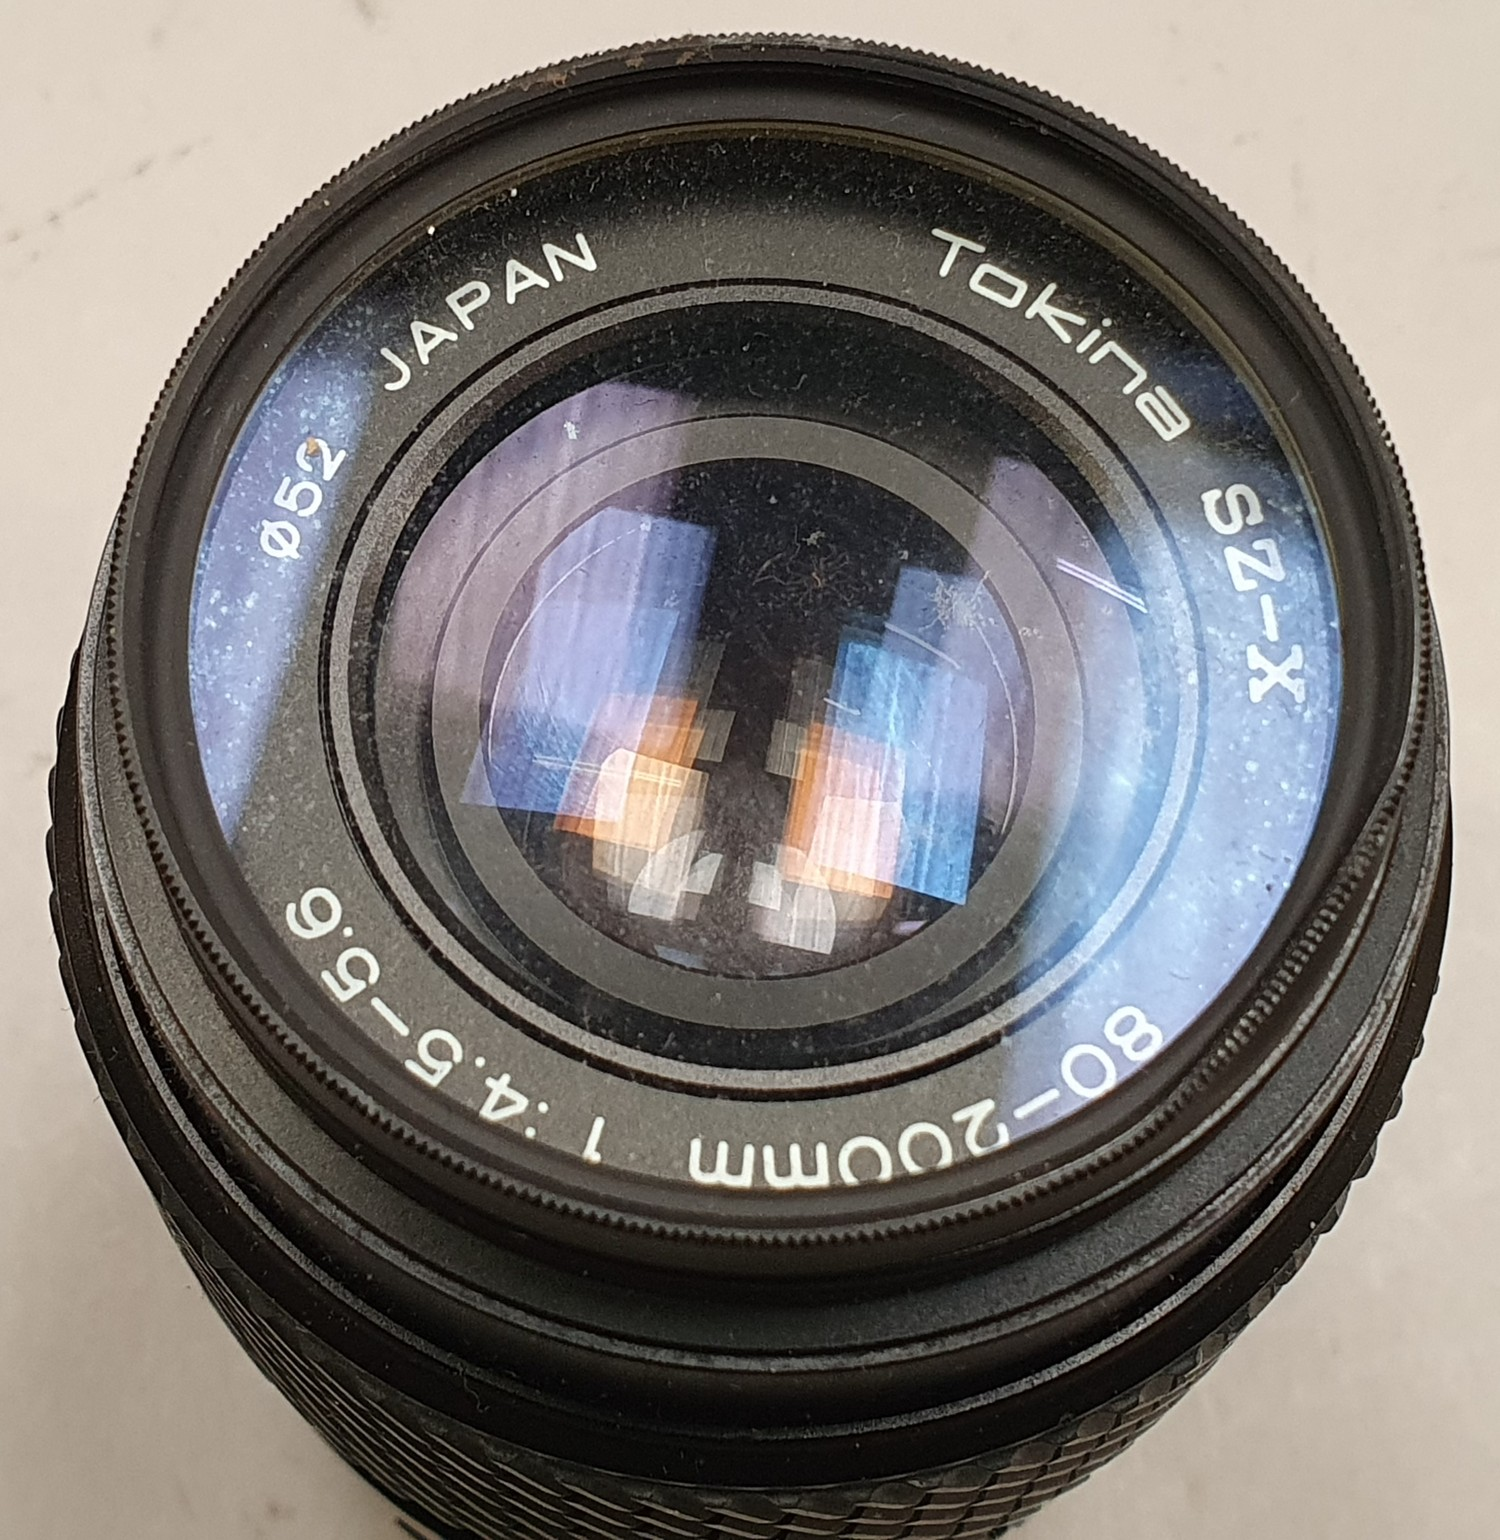 A collection of camera lenses to include Optomax, Nikon etc. - Image 4 of 9